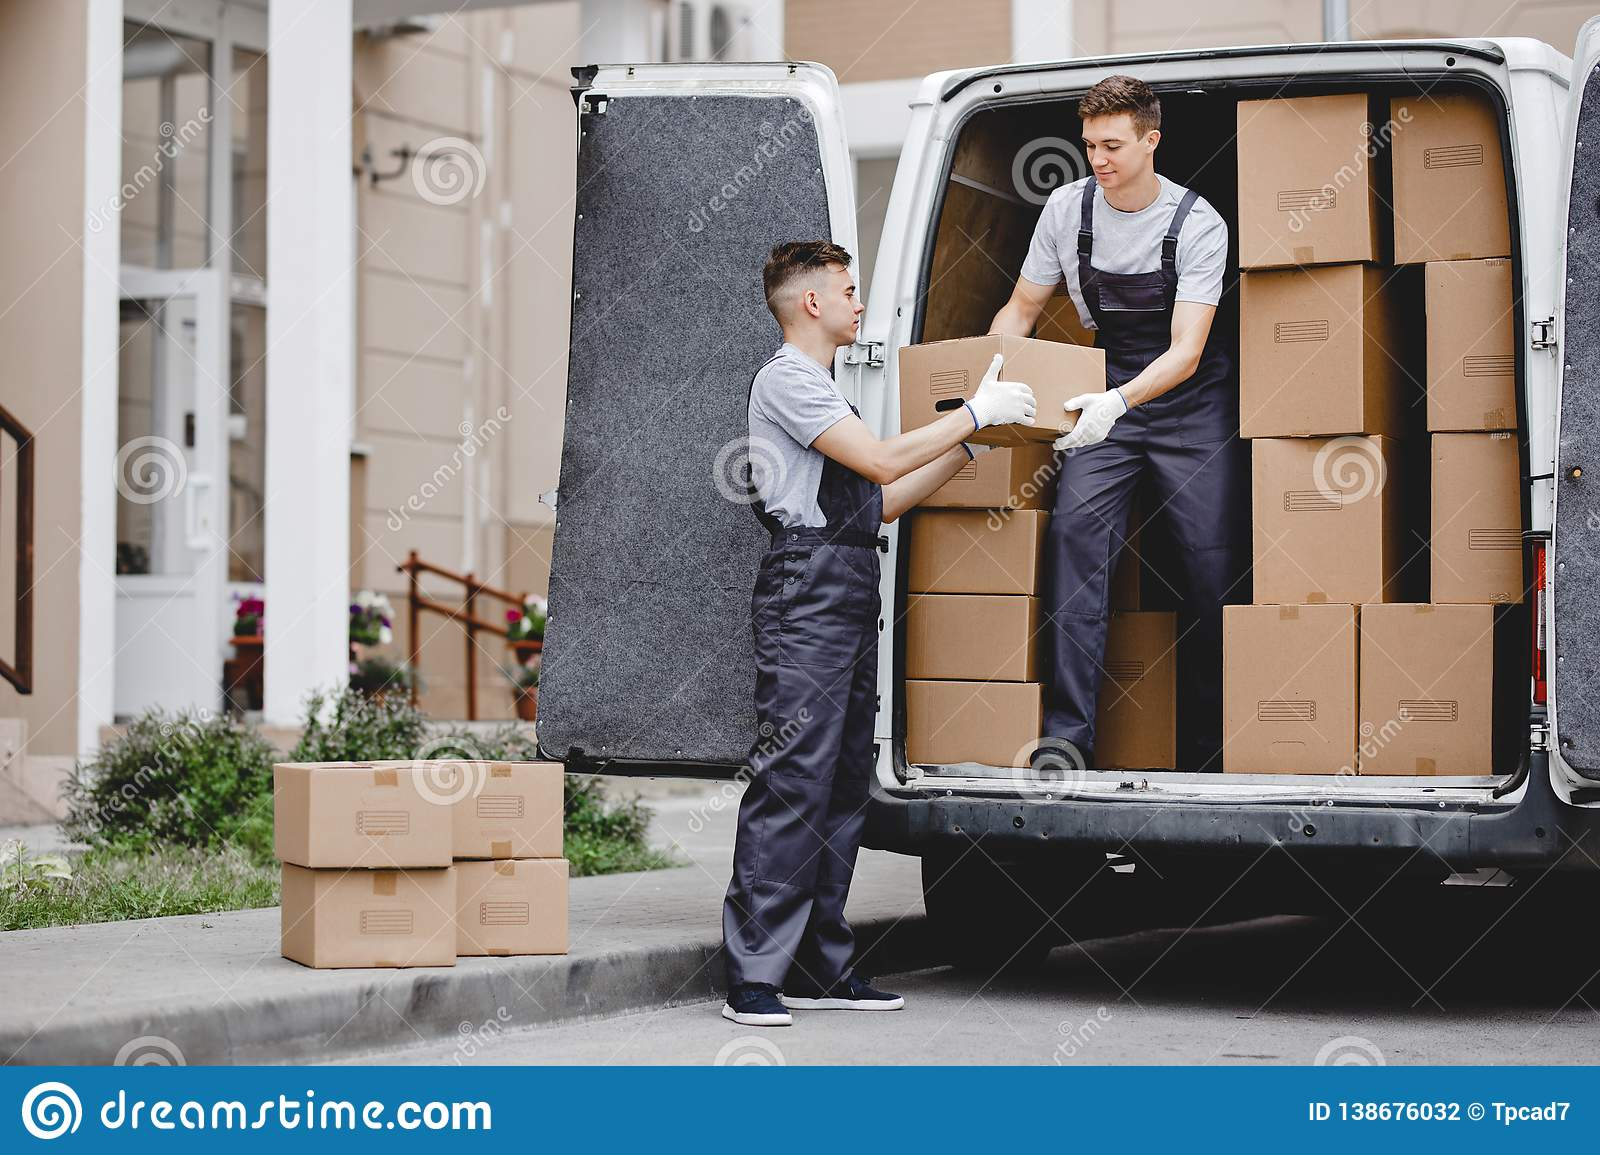 Two young handsome movers wearing uniforms are unloading the van full of boxes. House move, mover service